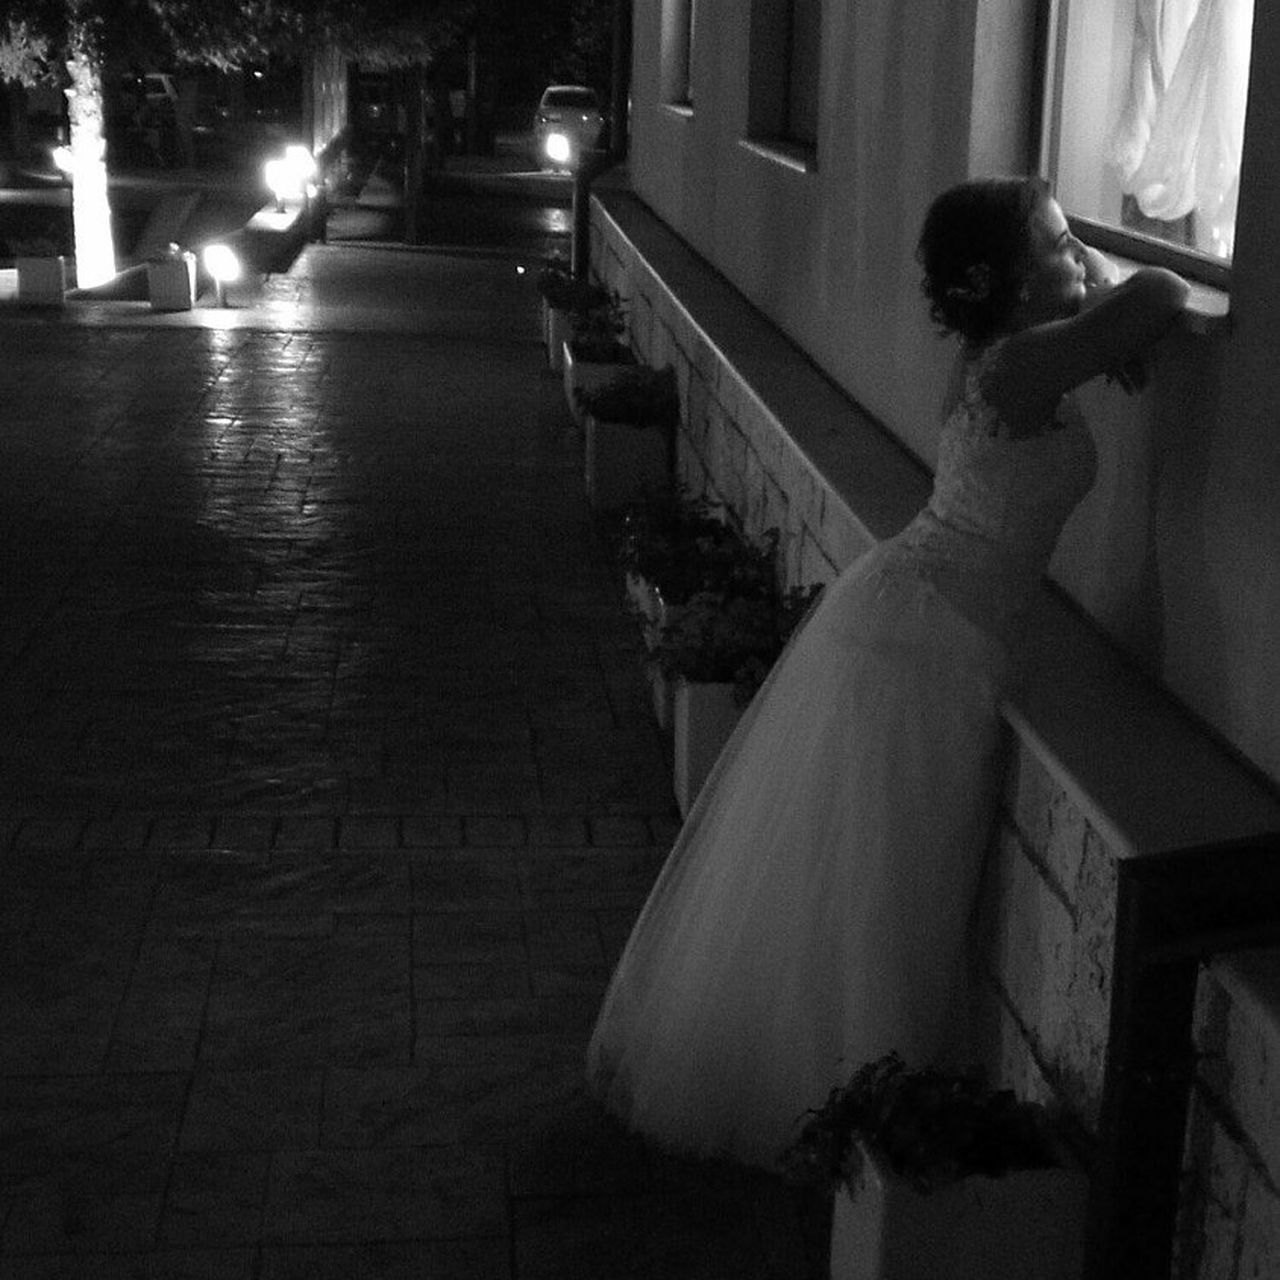 real people, women, lifestyles, night, illuminated, bride, one person, full length, indoors, young adult, wedding dress, people